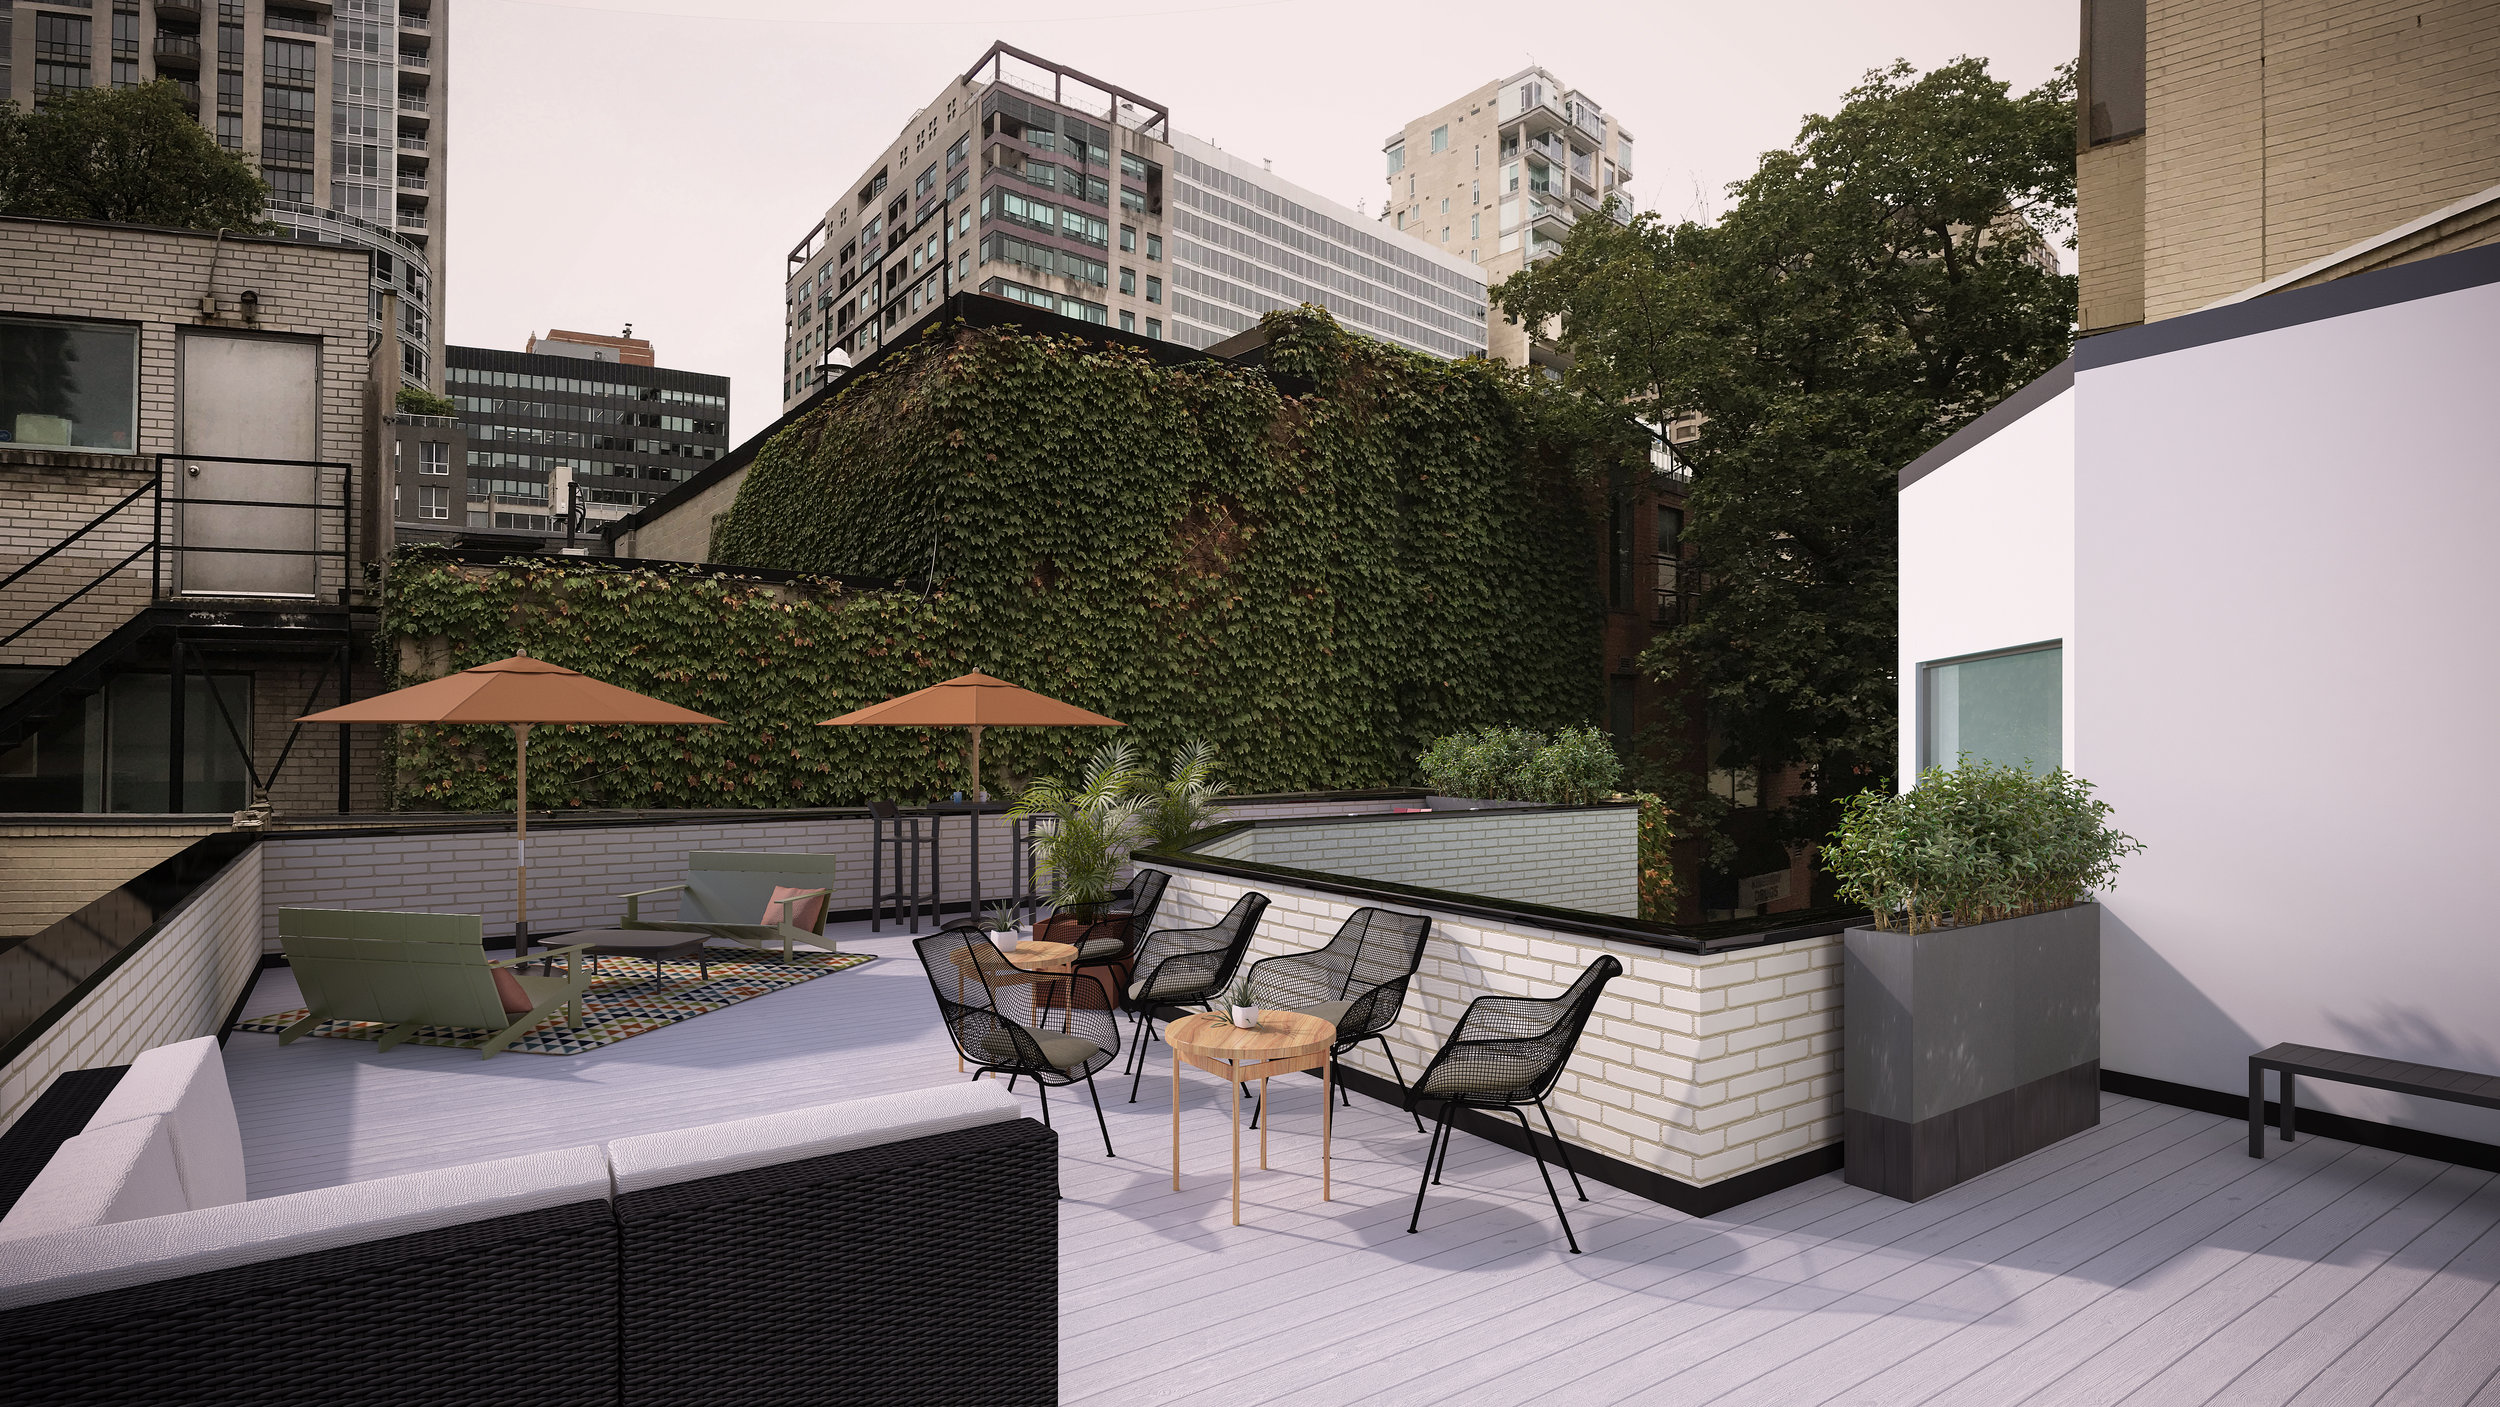 The two exclusive rooftop patios are an ideal place to connect and share ideas.